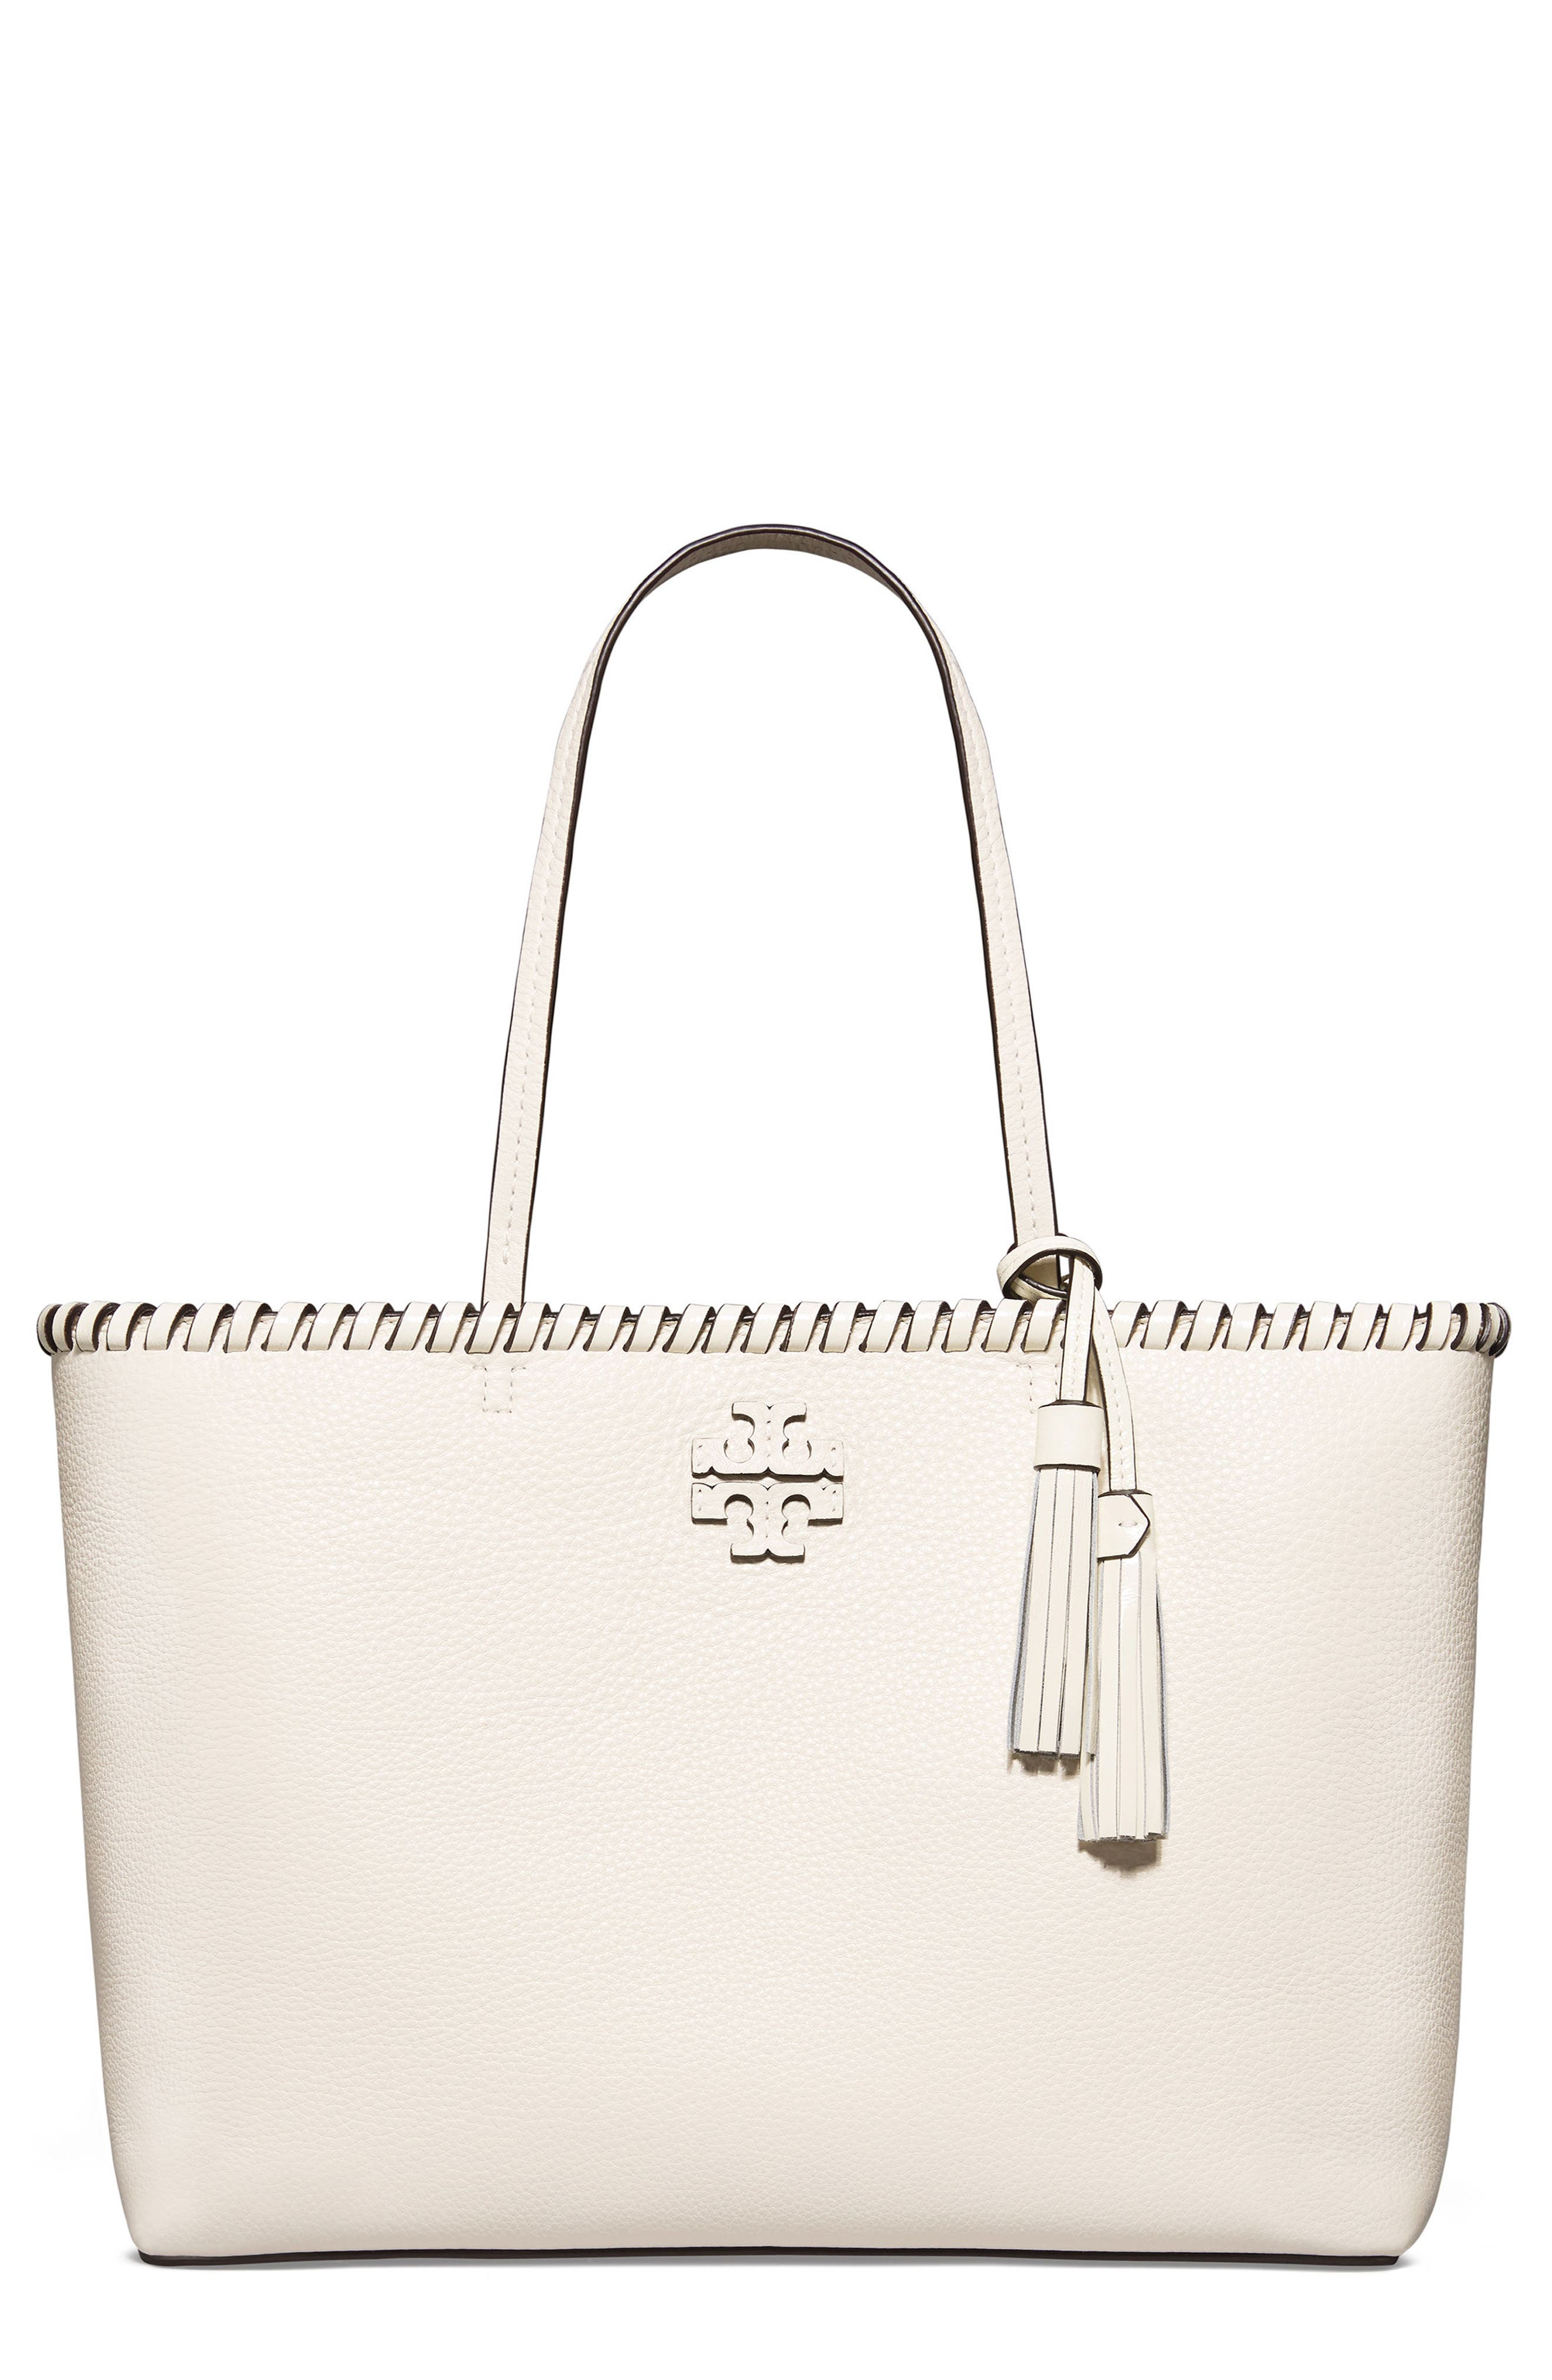 McGraw Whipstitch Leather Tote,                         Main,                         color,